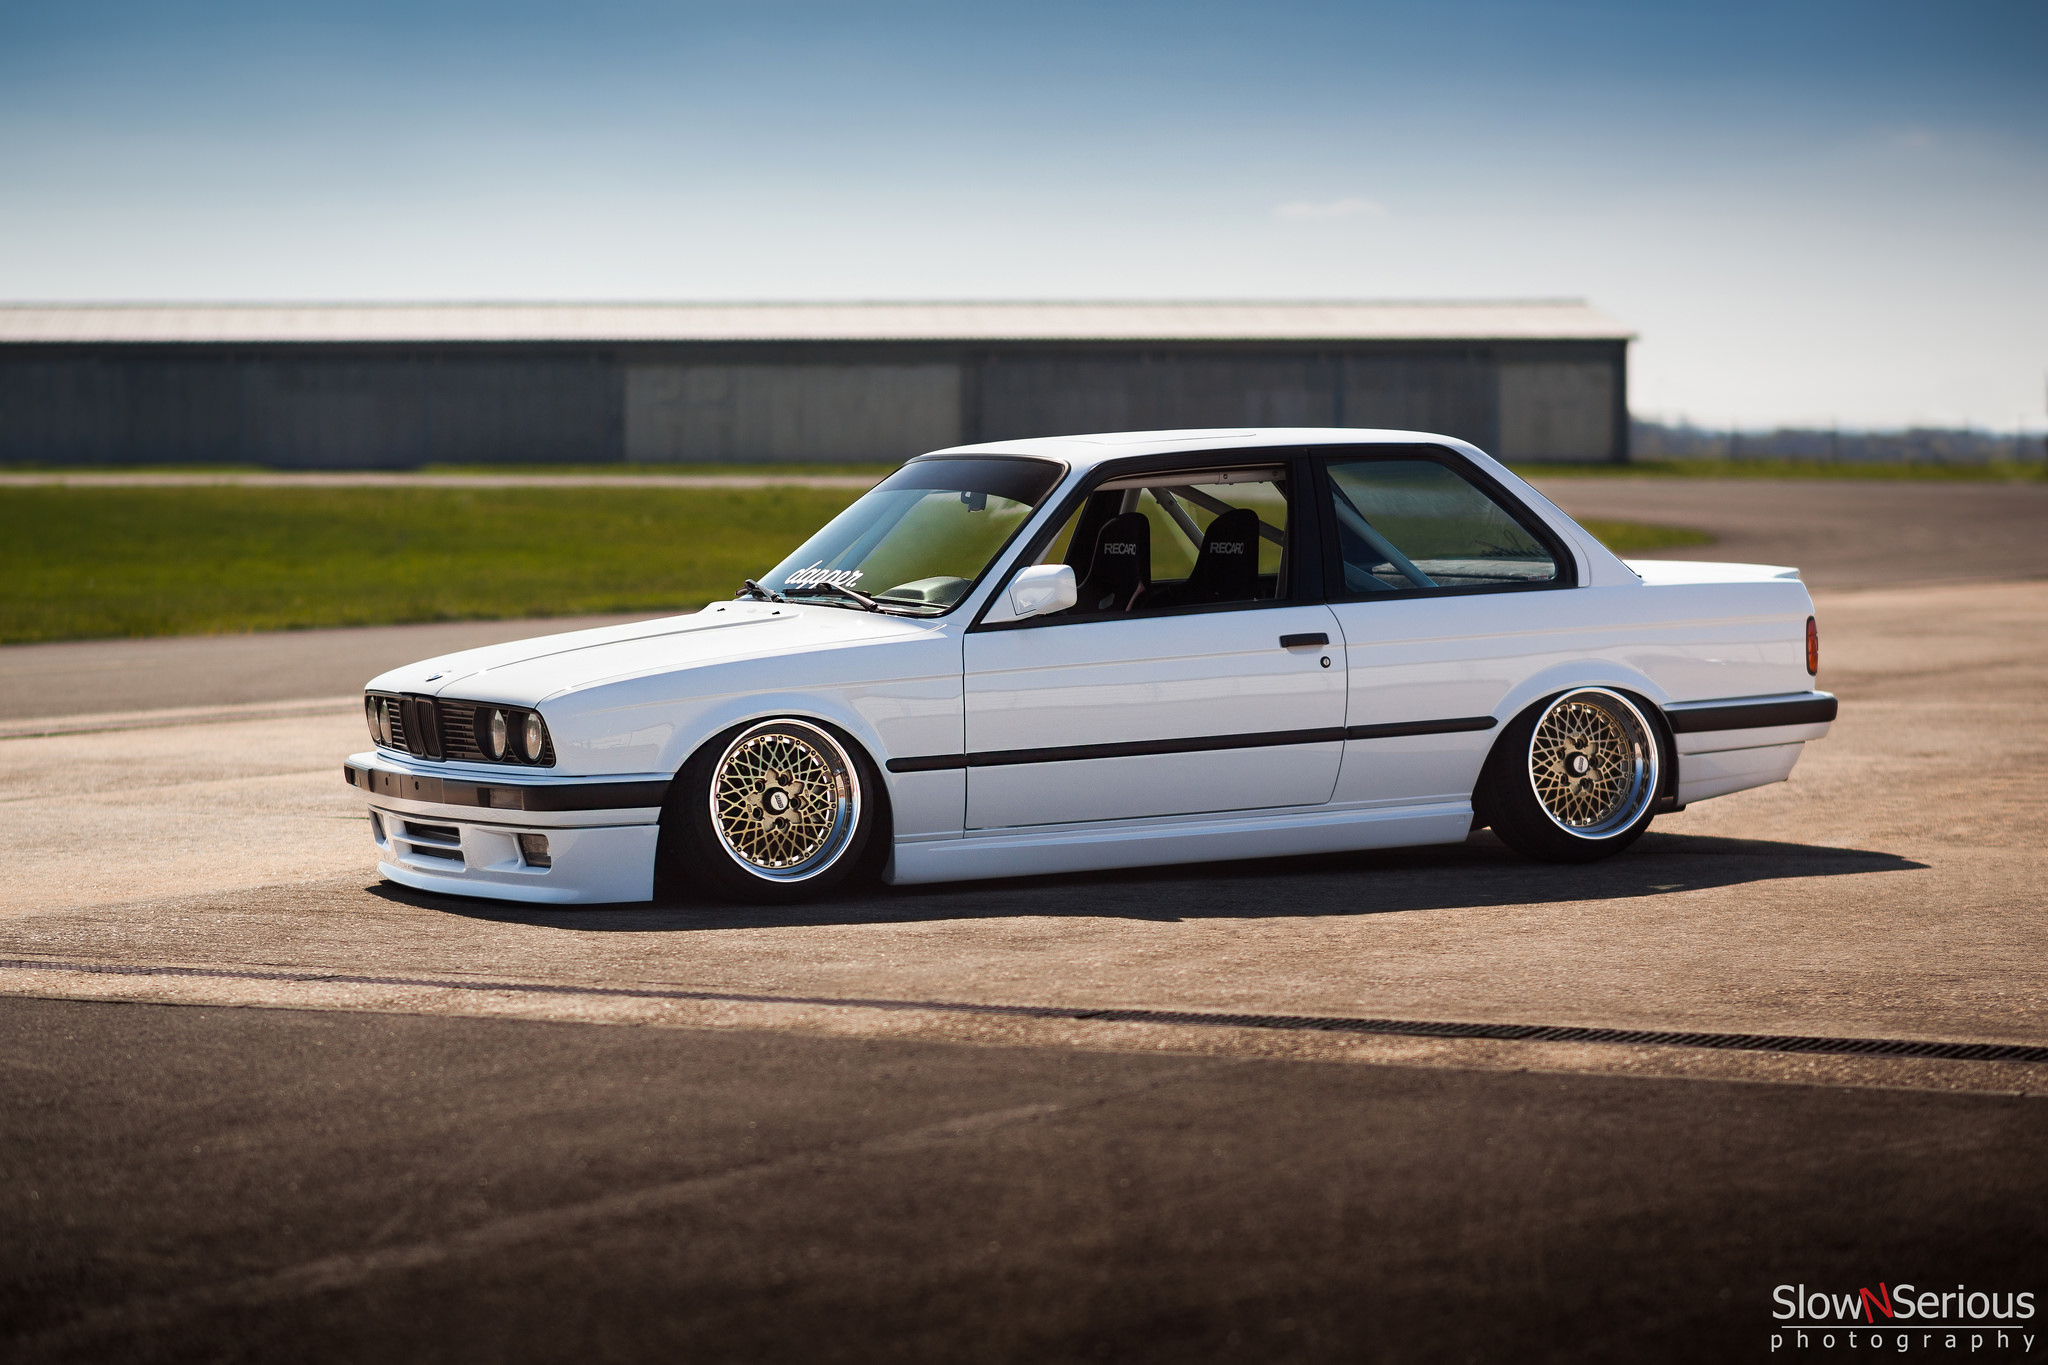 Amazing Bmw E30 Stancenation Form Gt Function